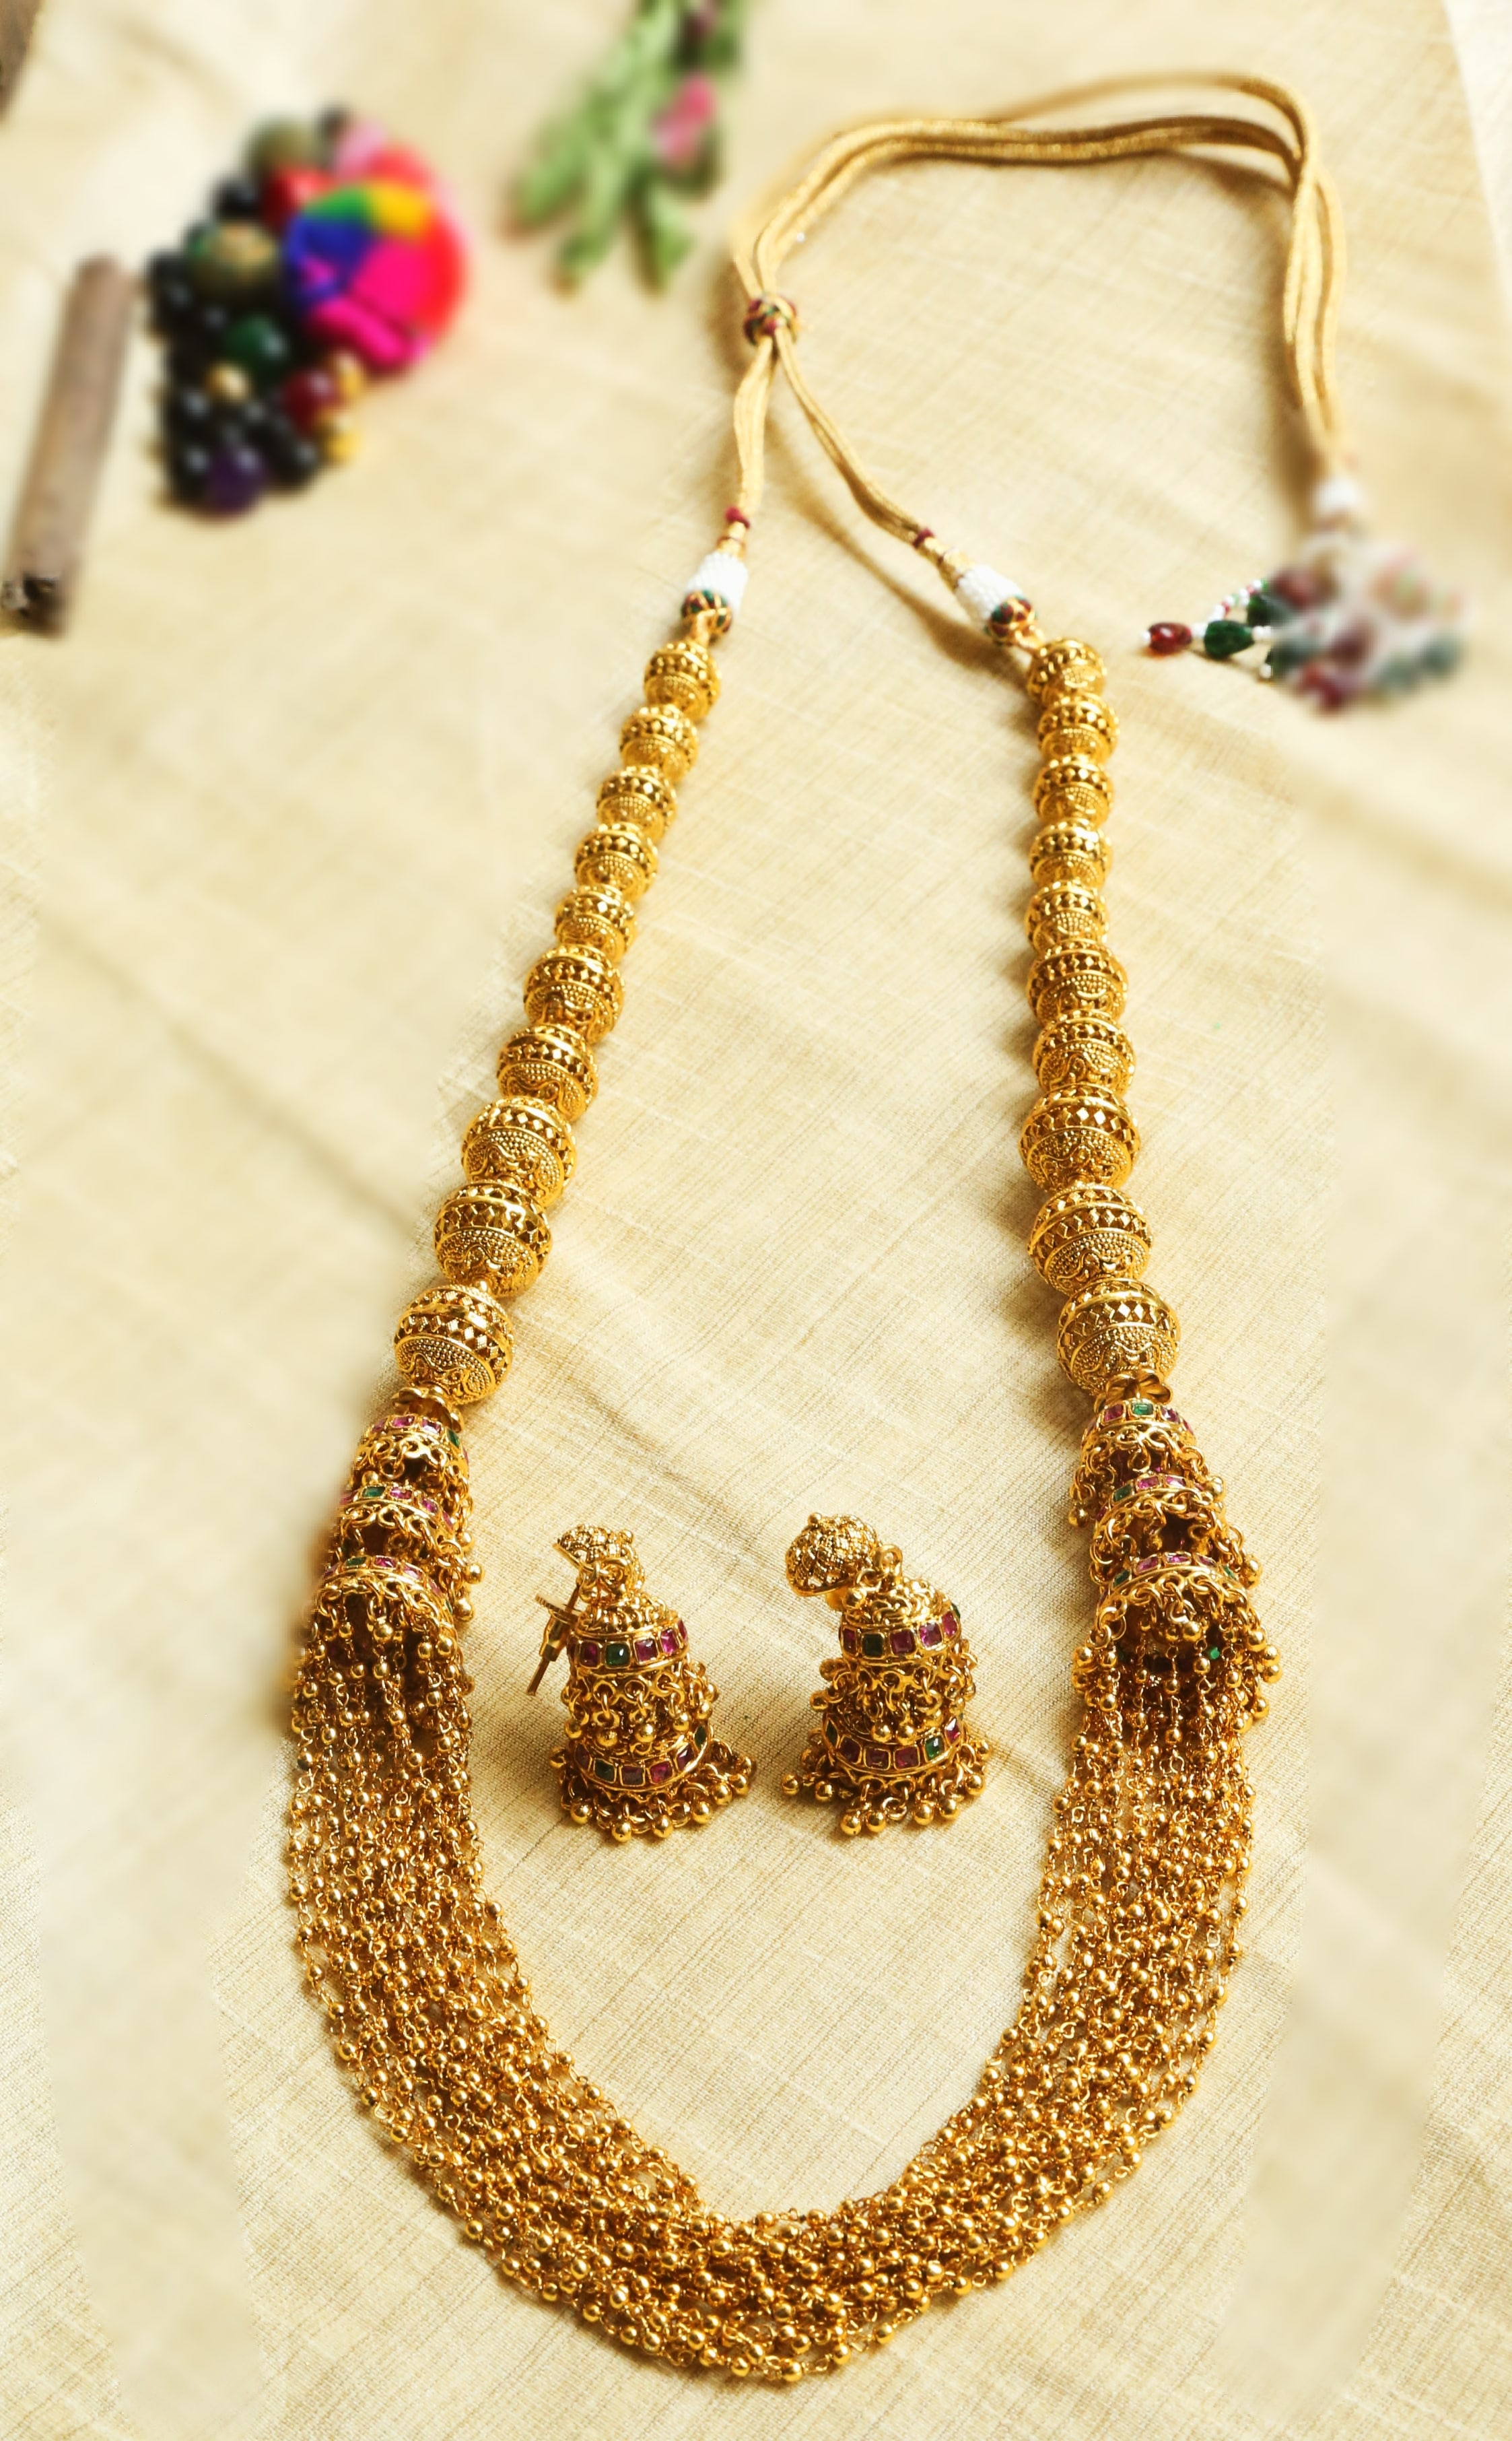 Antique-Big-Ball-Jhumki-Long-Necklace-01